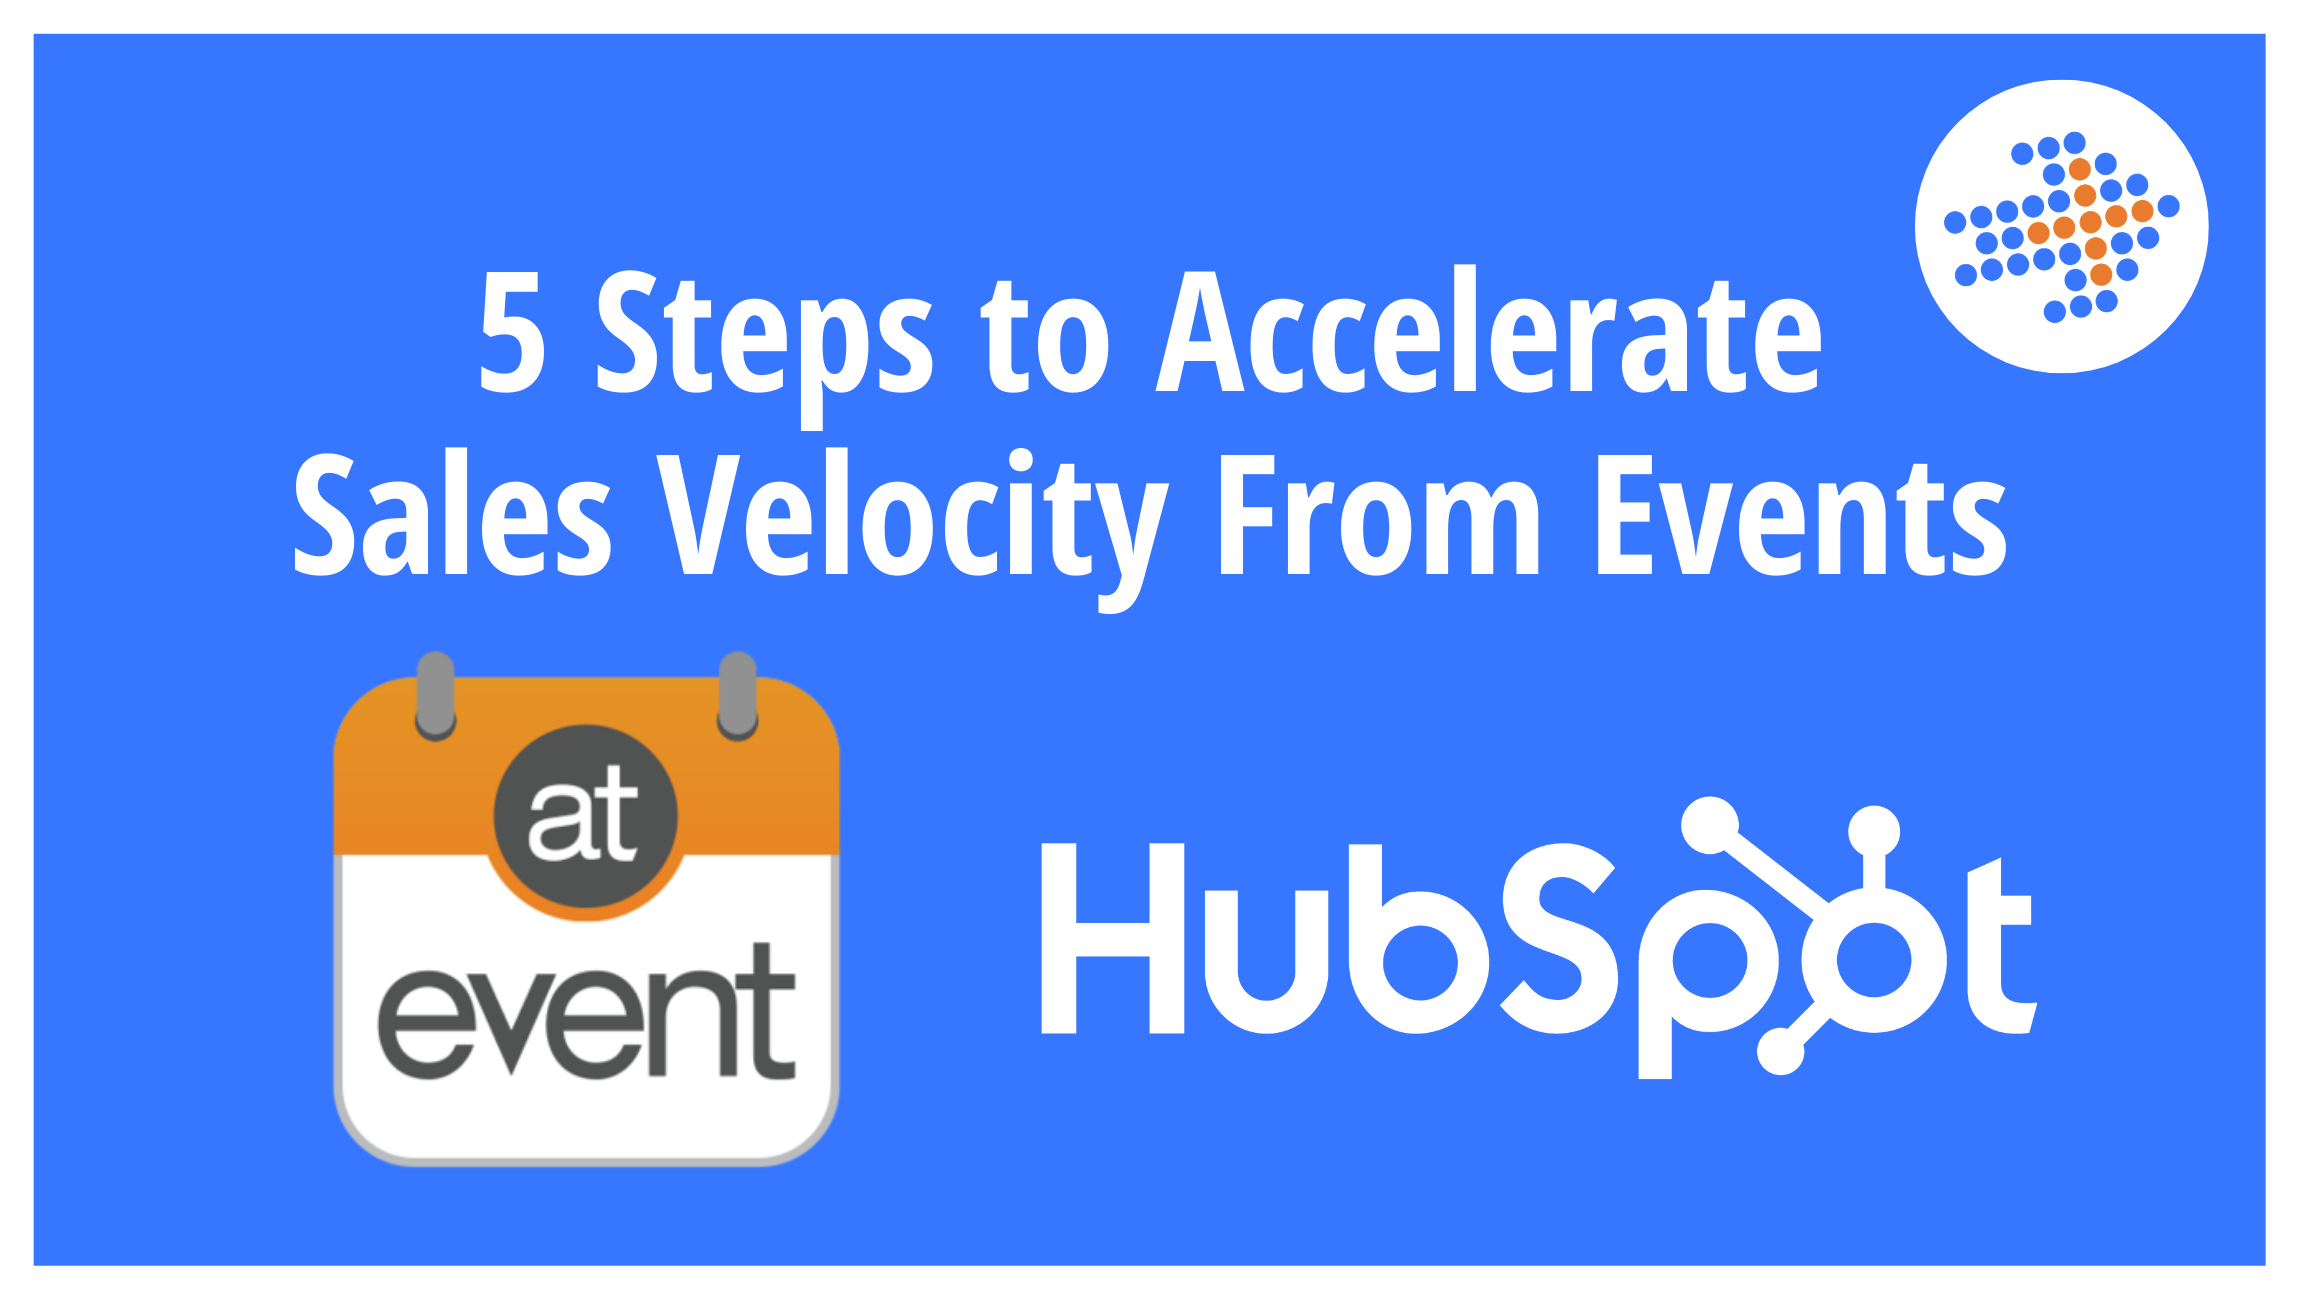 5 Steps to Accelerate Sales Velocity From Events Using HubSpot